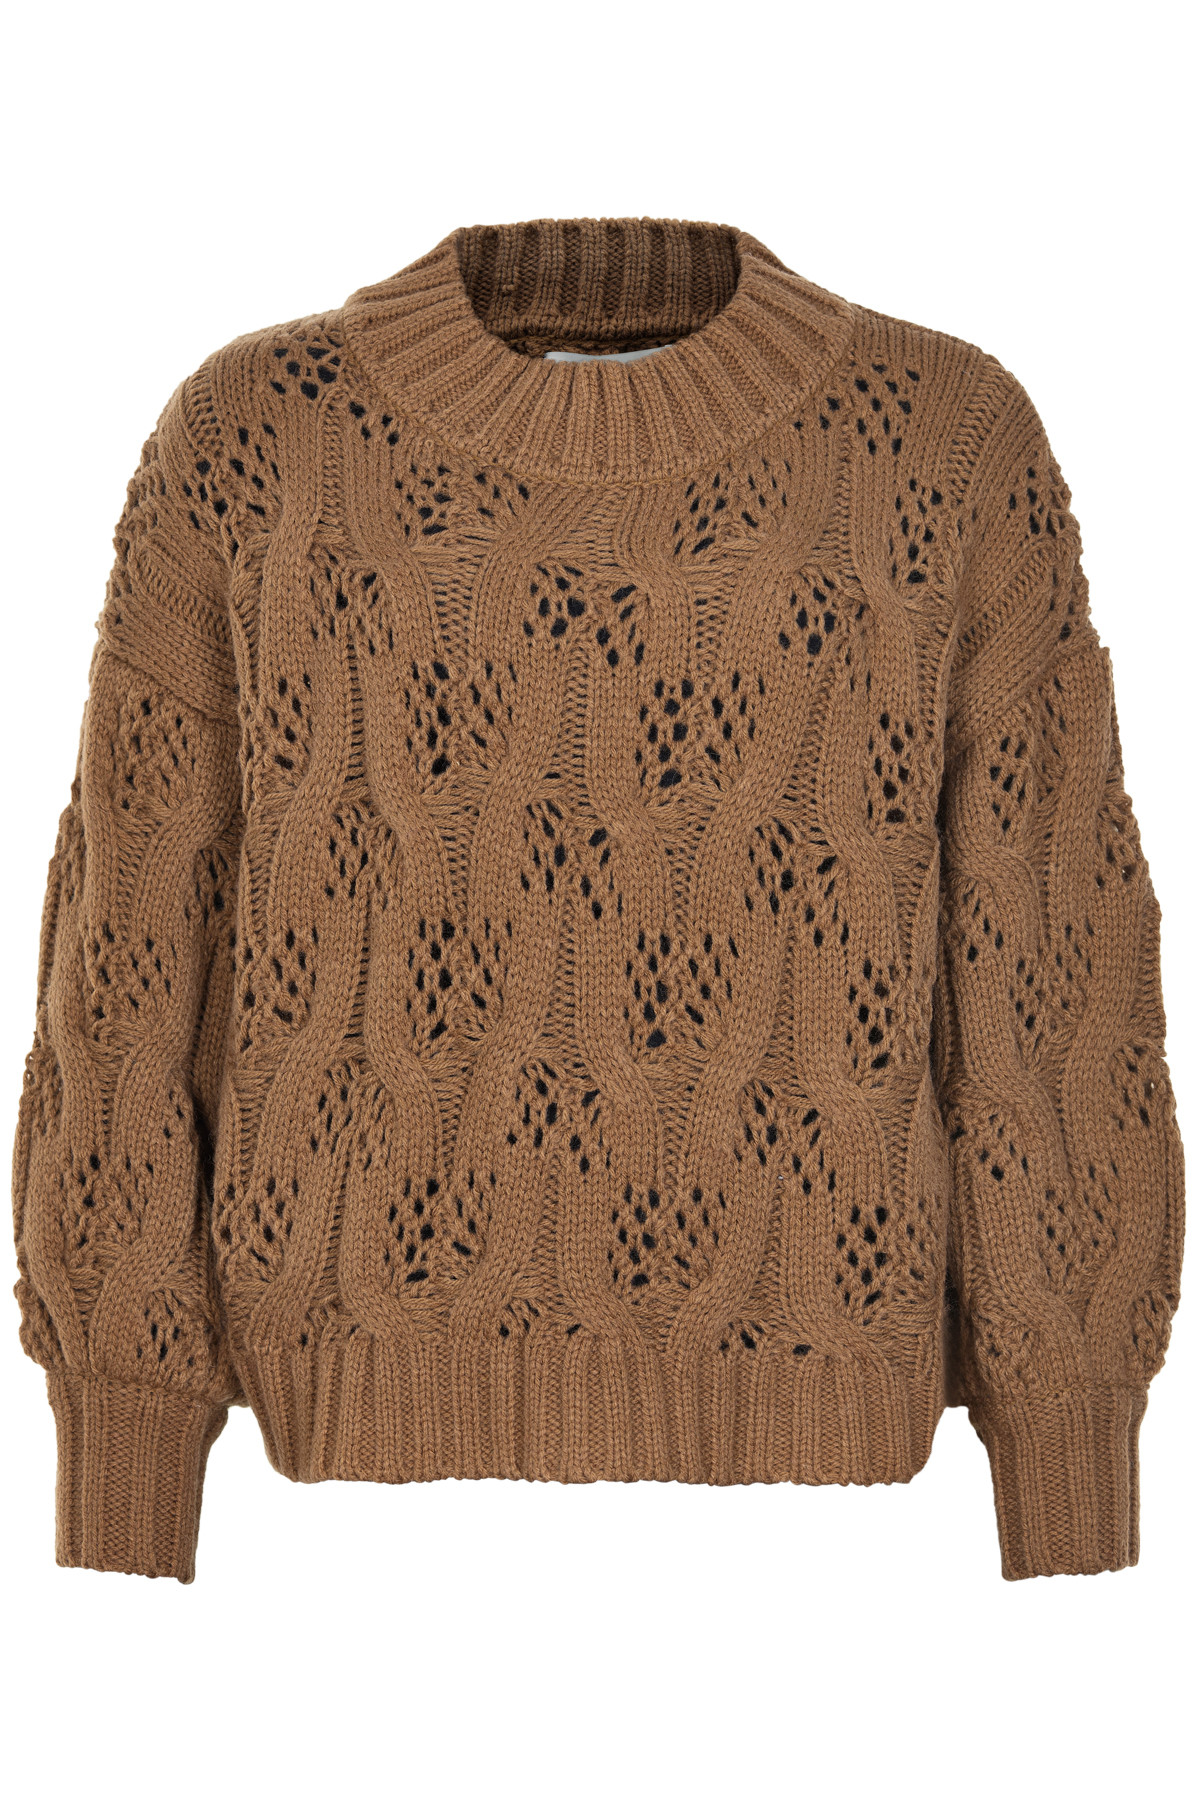 Image of   AND LESS ALHANIE PULLOVER 5519206 (Toasted Coconut, XS)